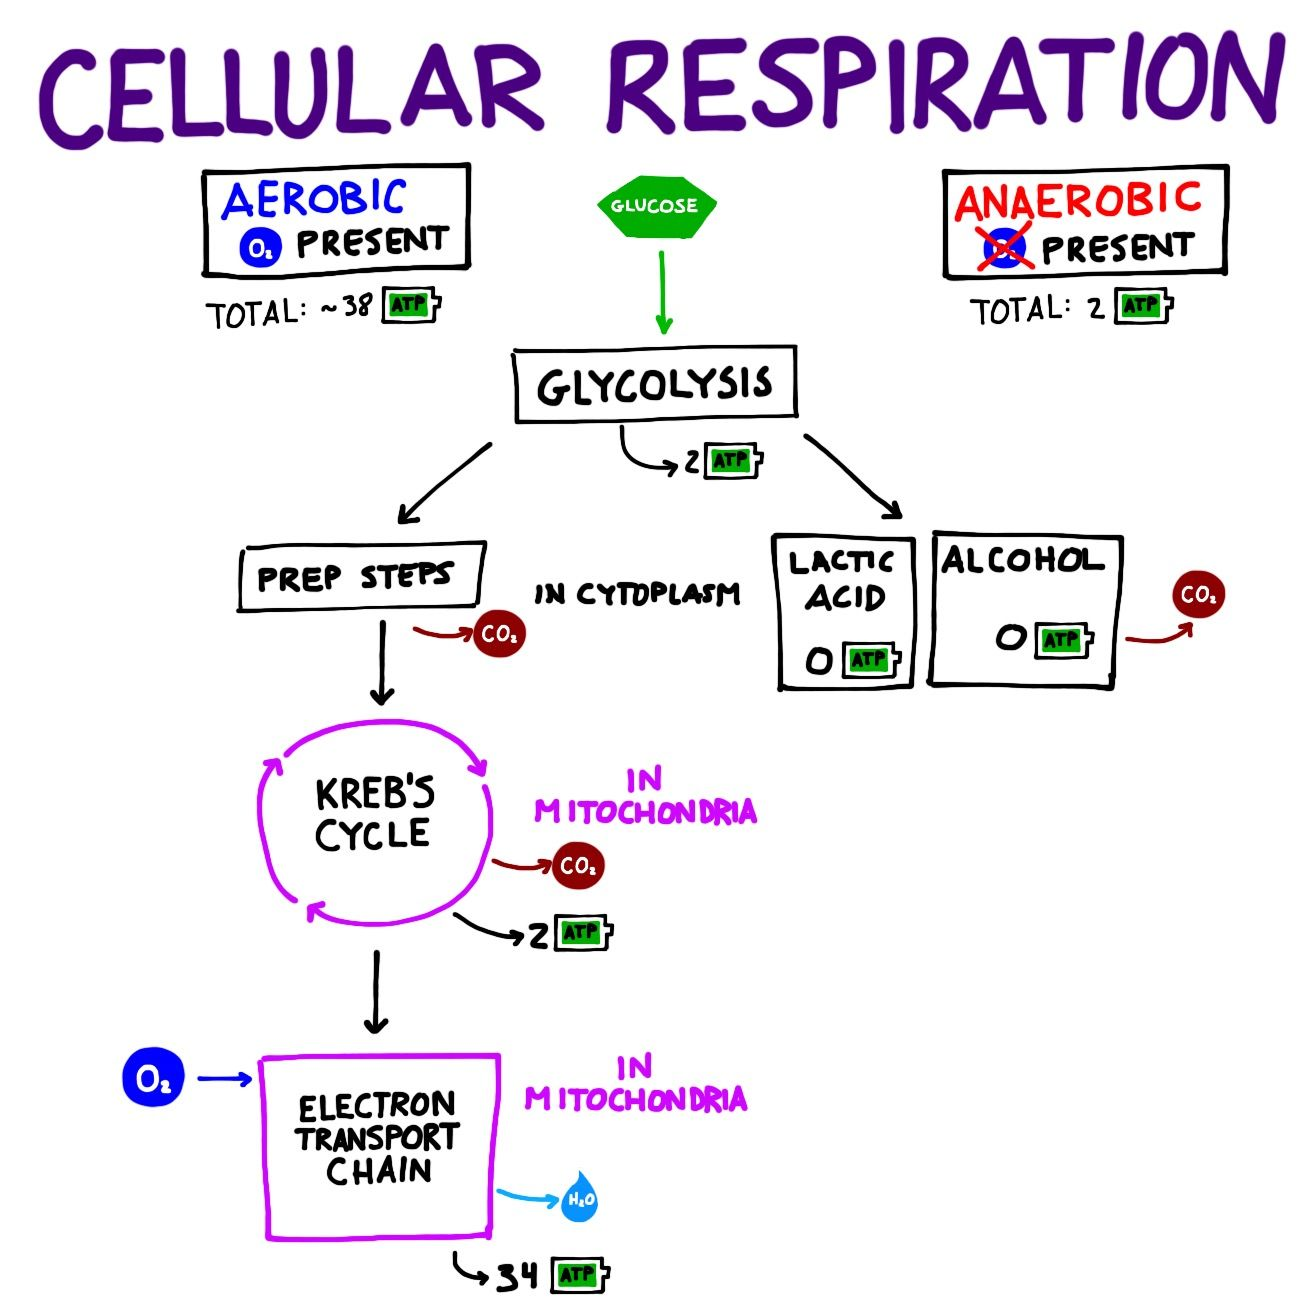 electron transport chain simple diagram chevrolet alternator wiring overview of the major steps cellular respiration